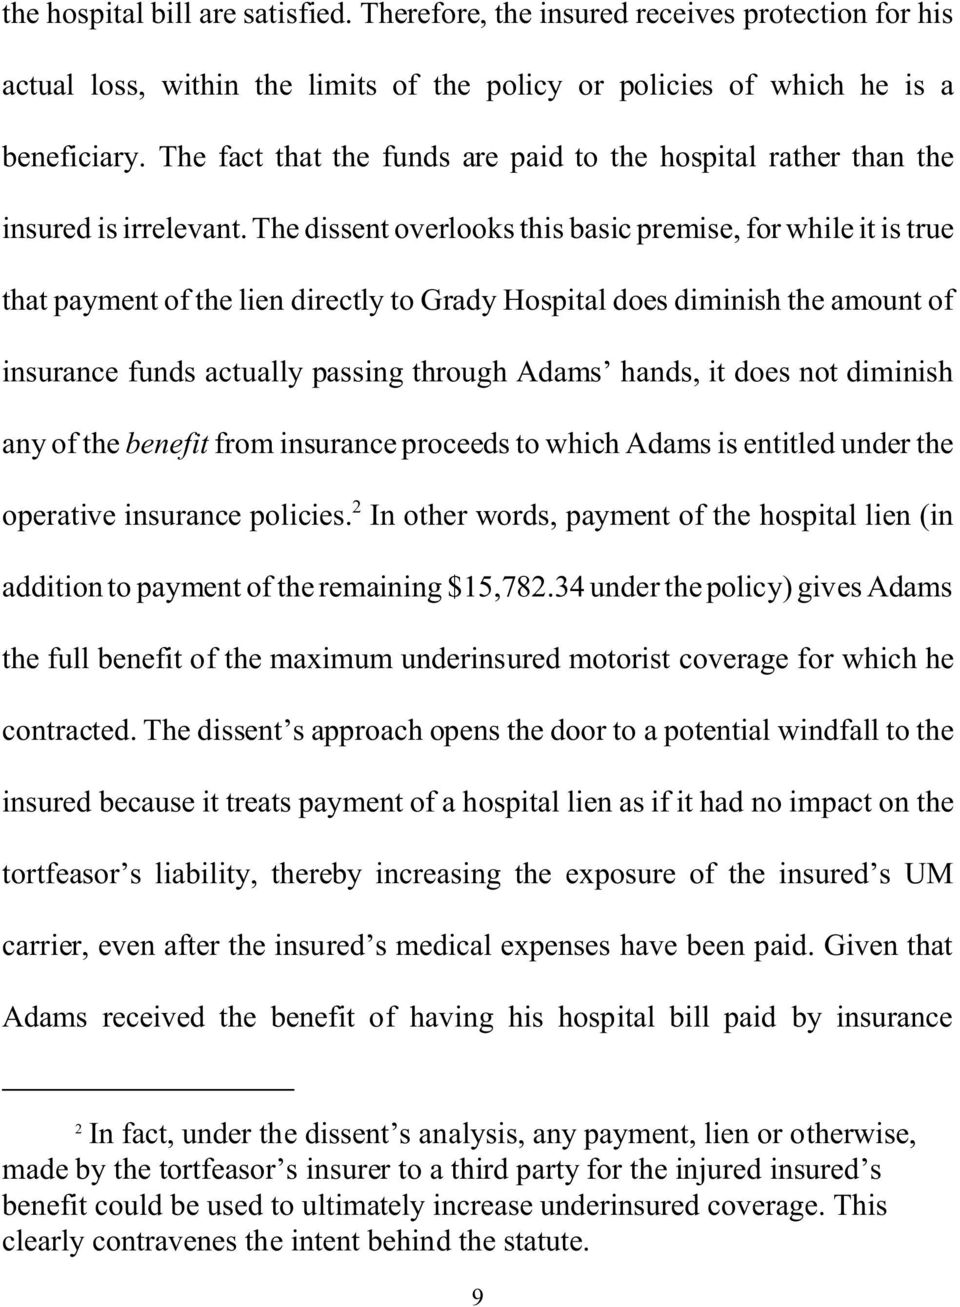 The dissent overlooks this basic premise, for while it is true that payment of the lien directly to Grady Hospital does diminish the amount of insurance funds actually passing through Adams hands, it